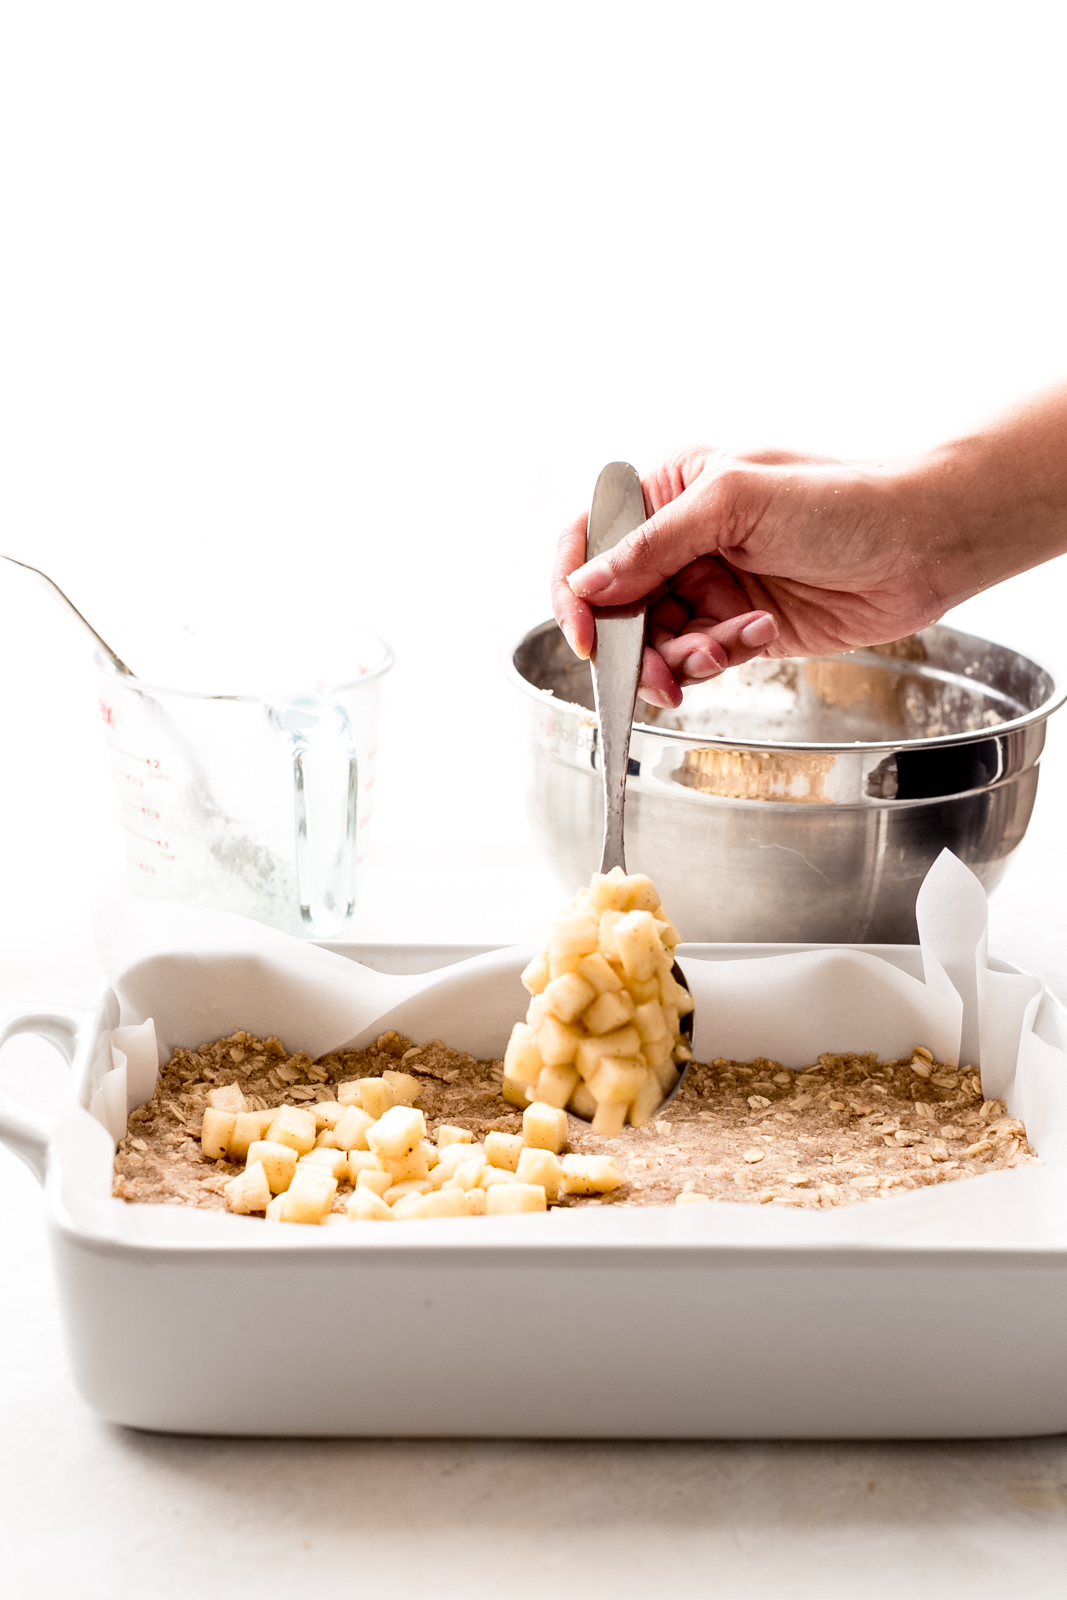 hand with spoon sprinkling diced apples over crust in white baking dish